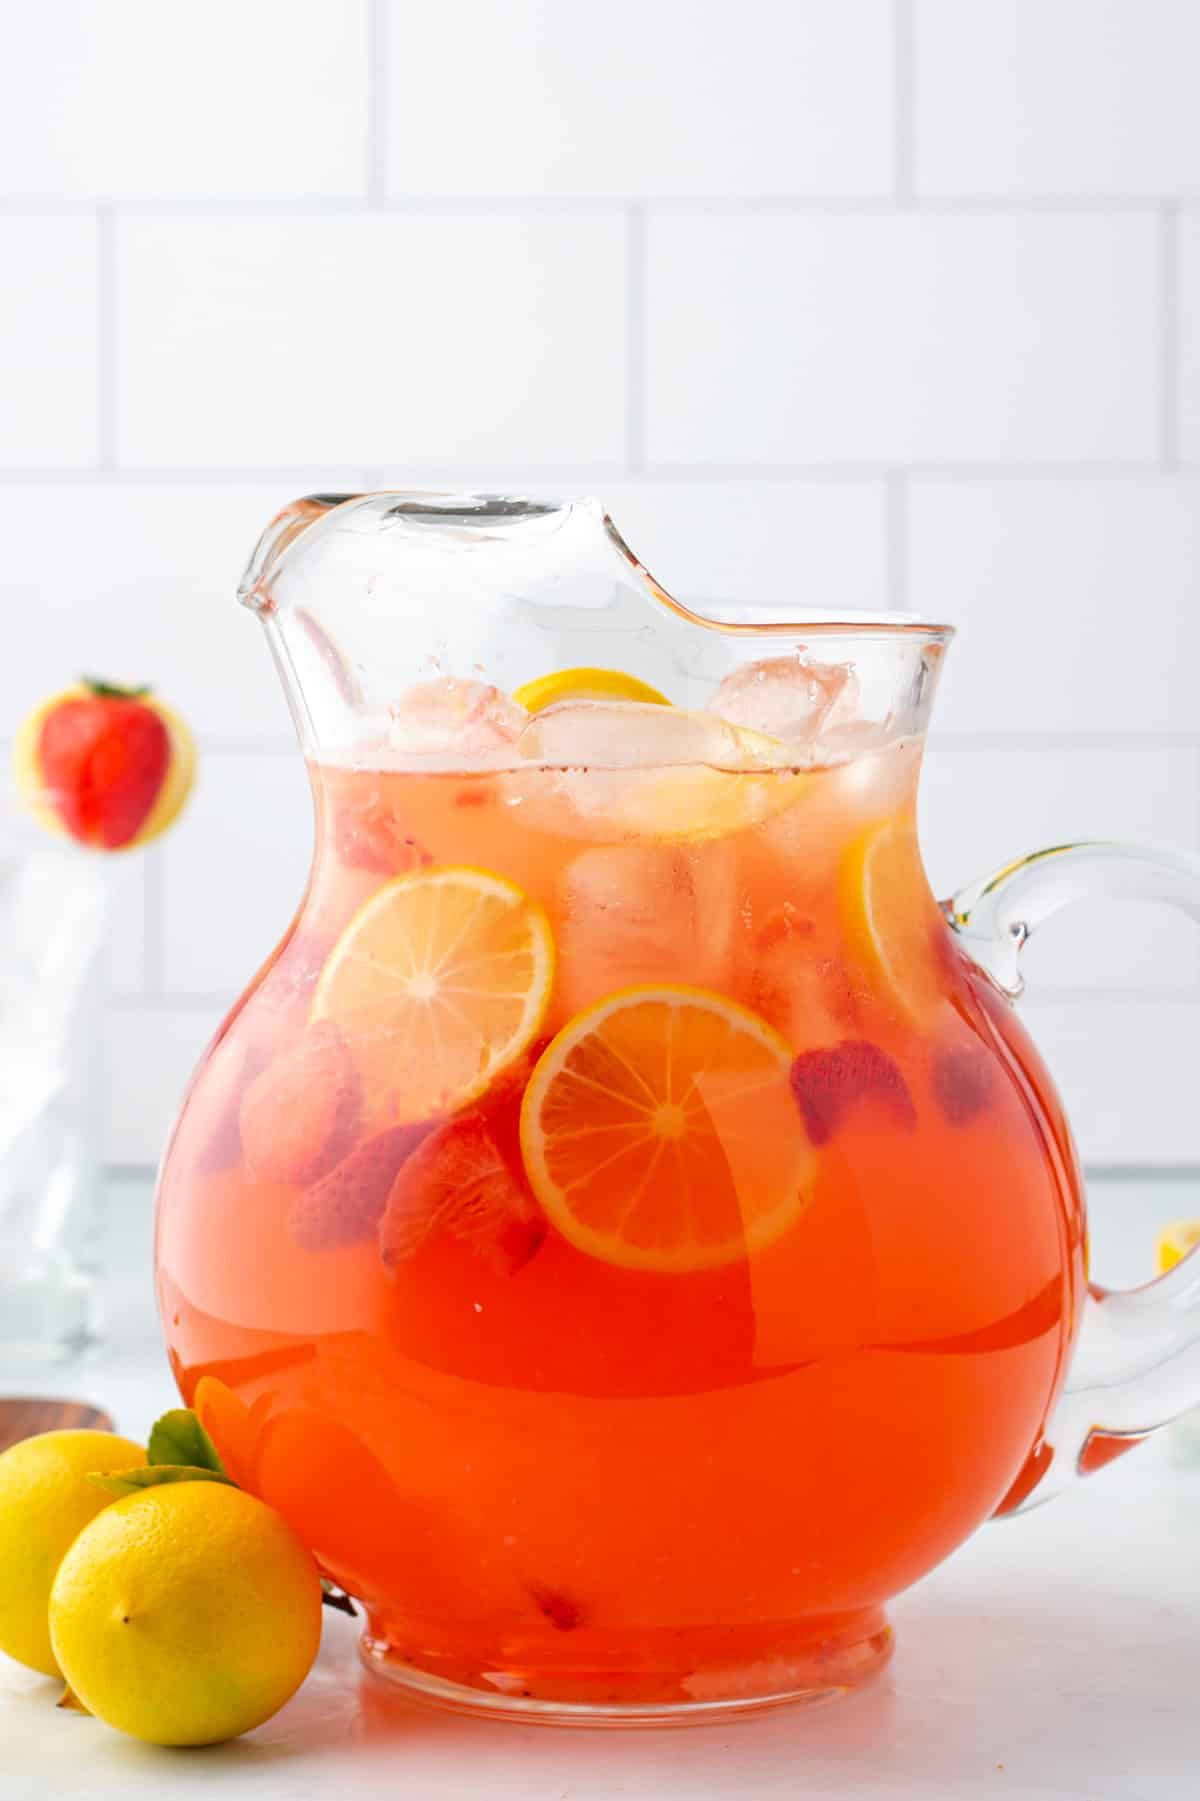 a pitcher of lemonad flavored with strawberries.